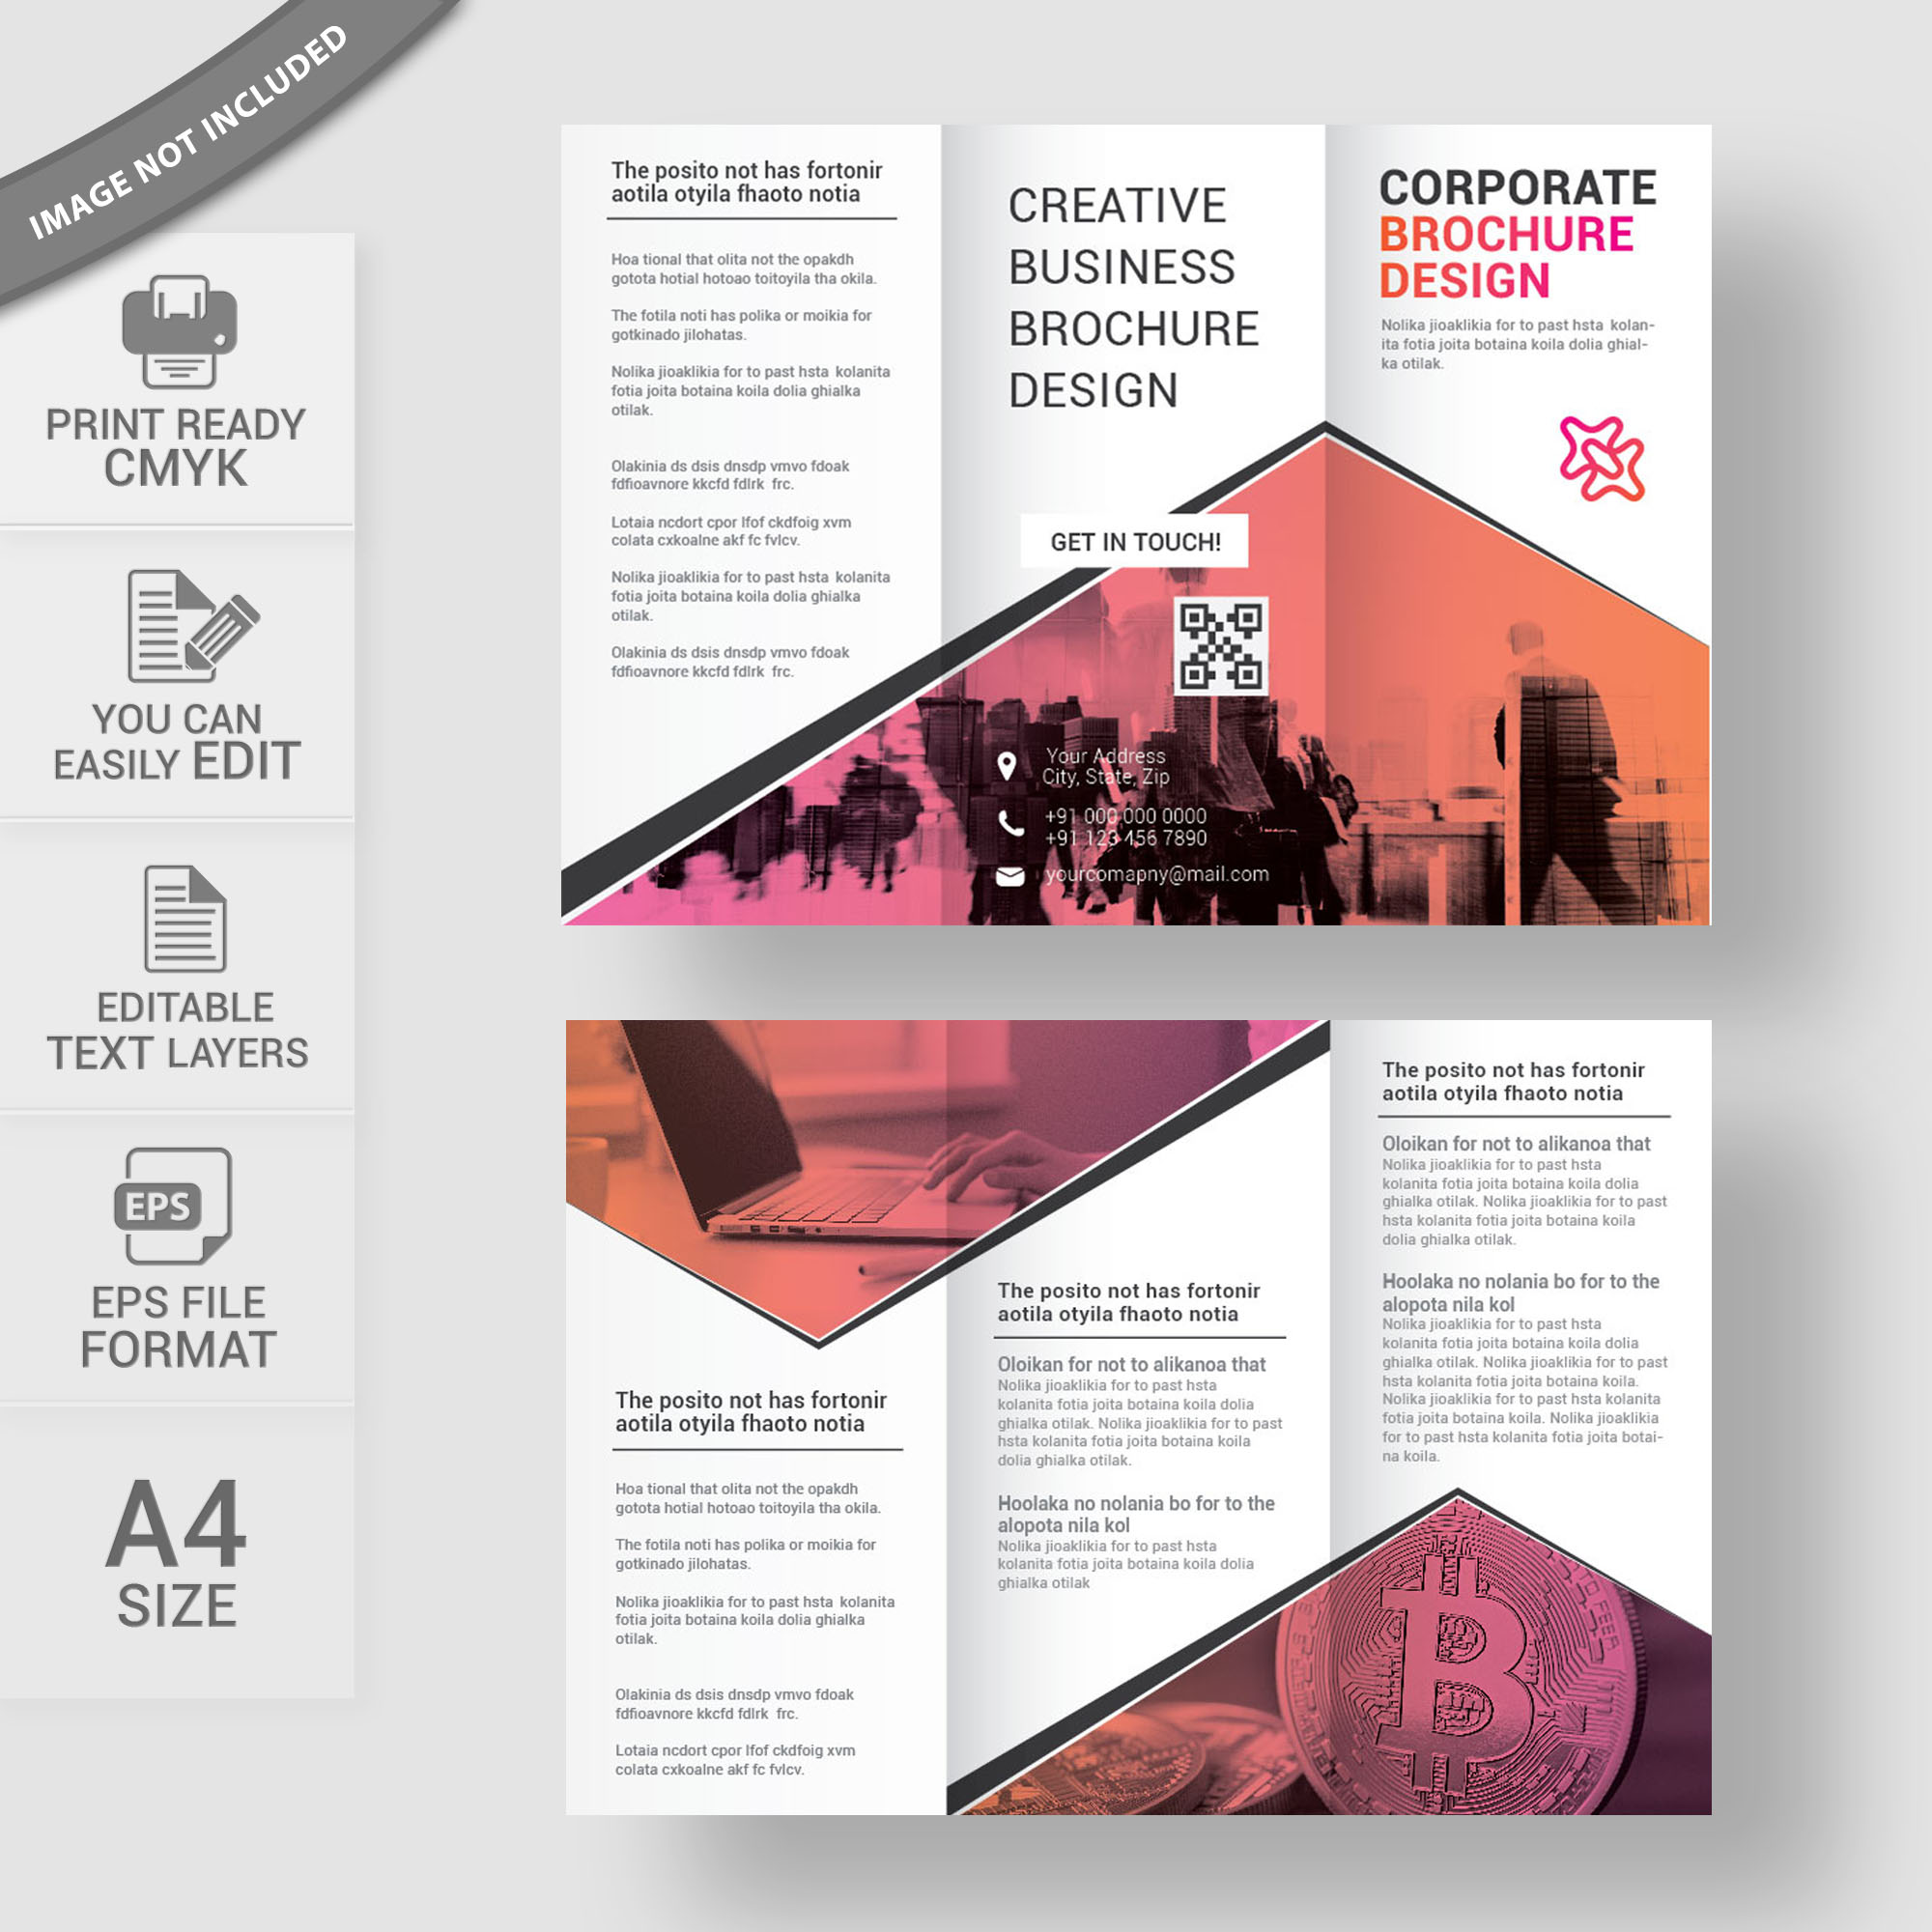 Business Brochure Template Free Download Wisxicom - Business brochures templates